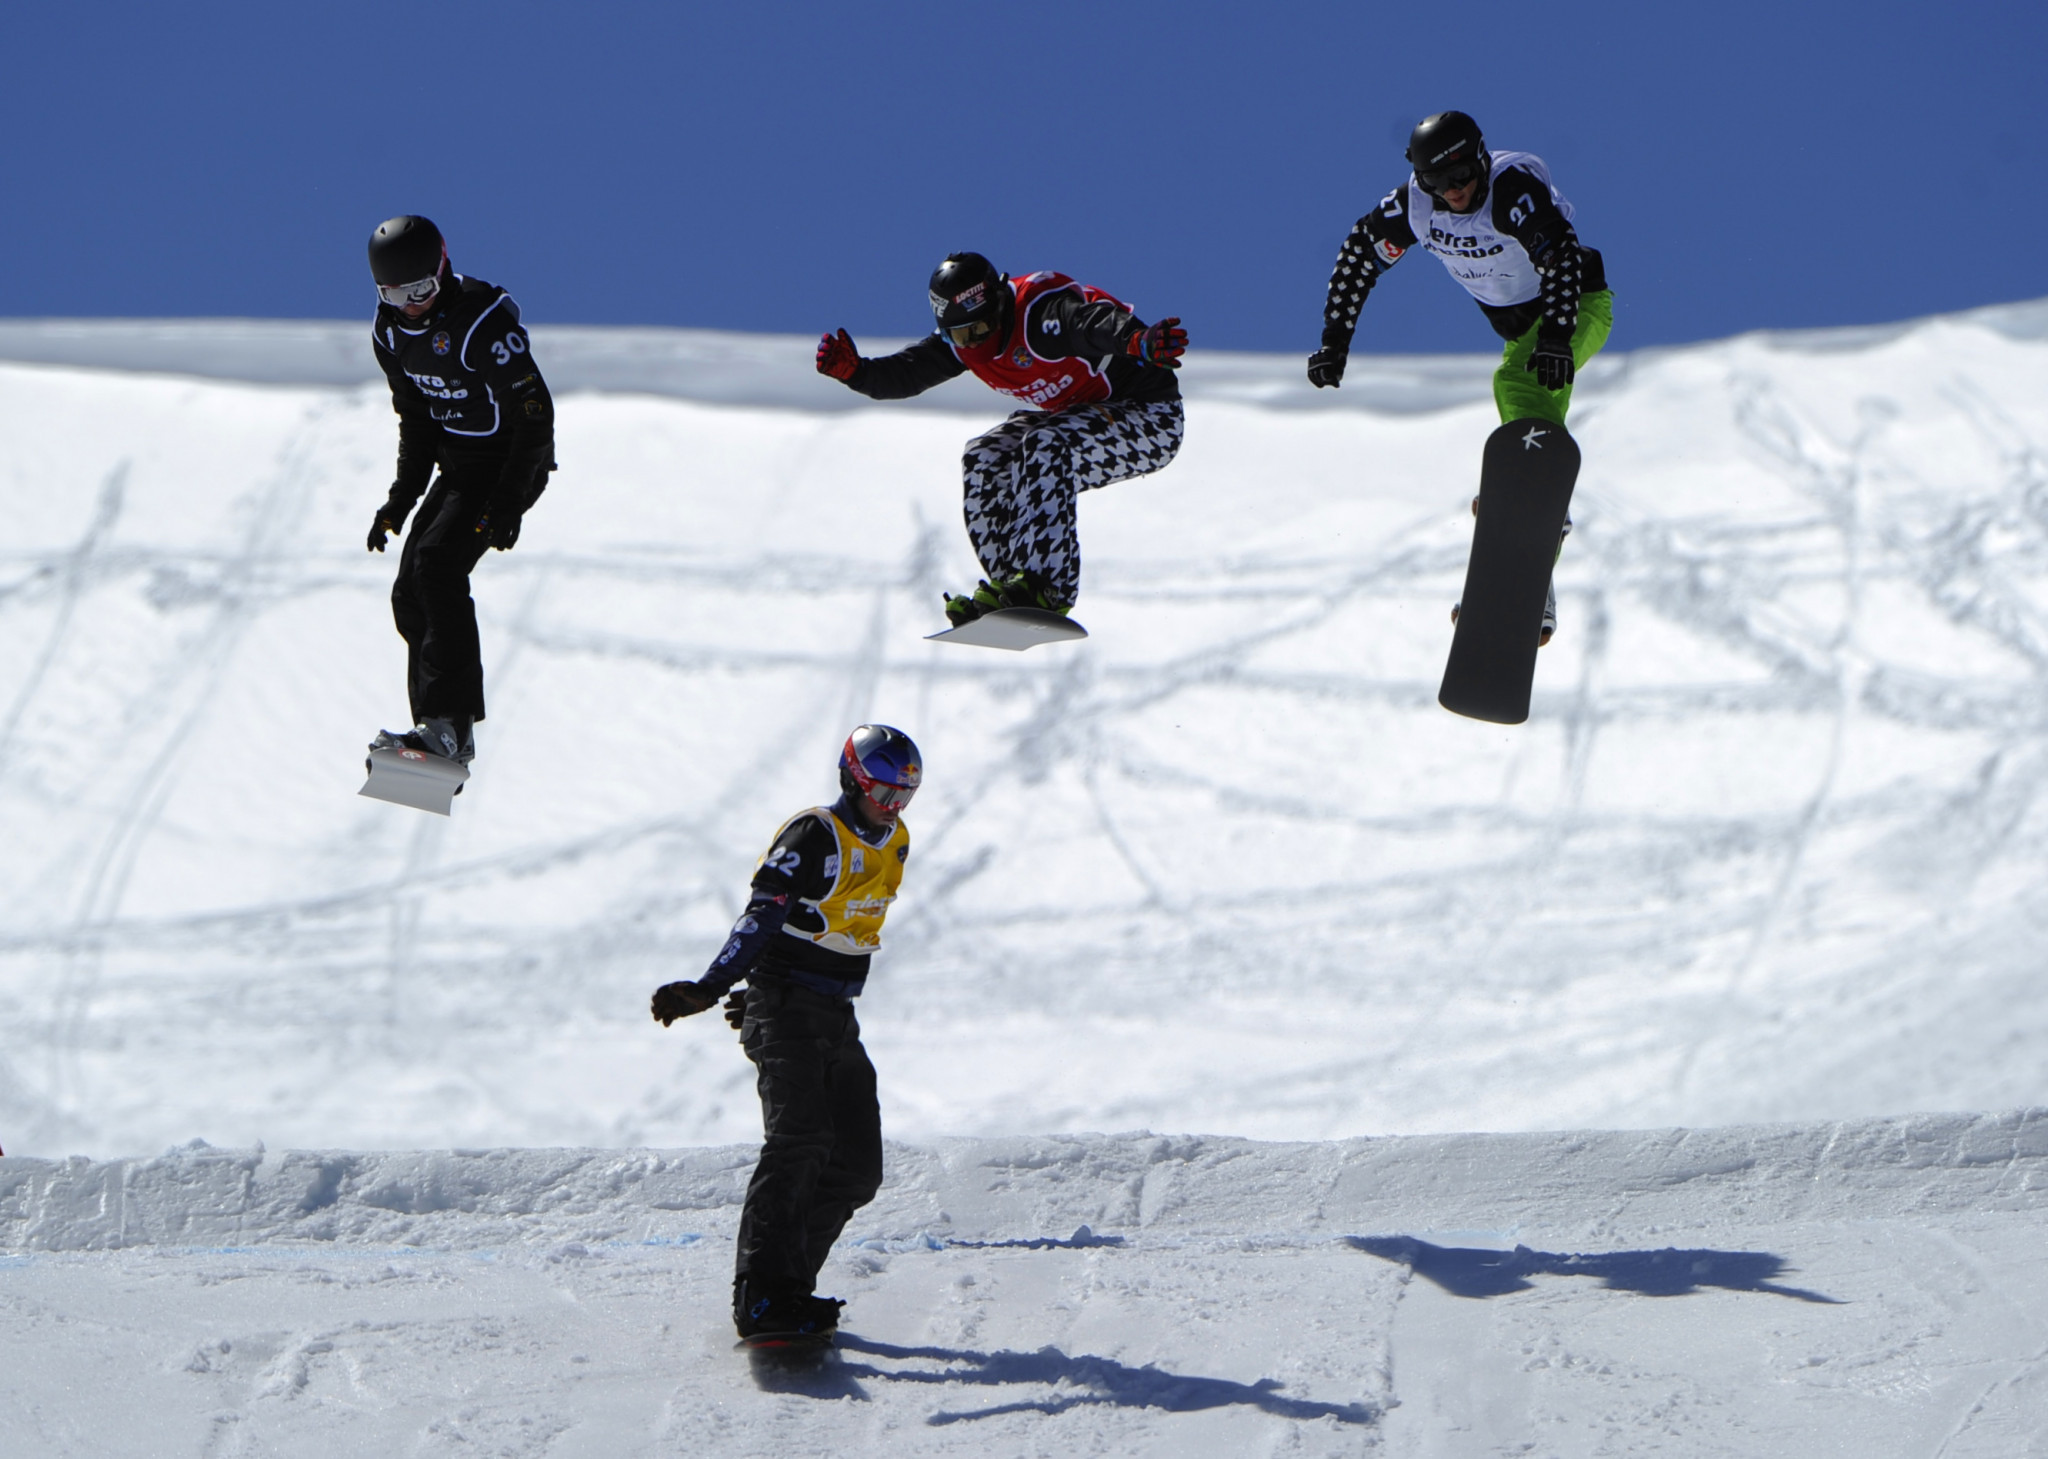 Sierra Nevada to hold penultimate stage of FIS Snowboard Cross World Cup